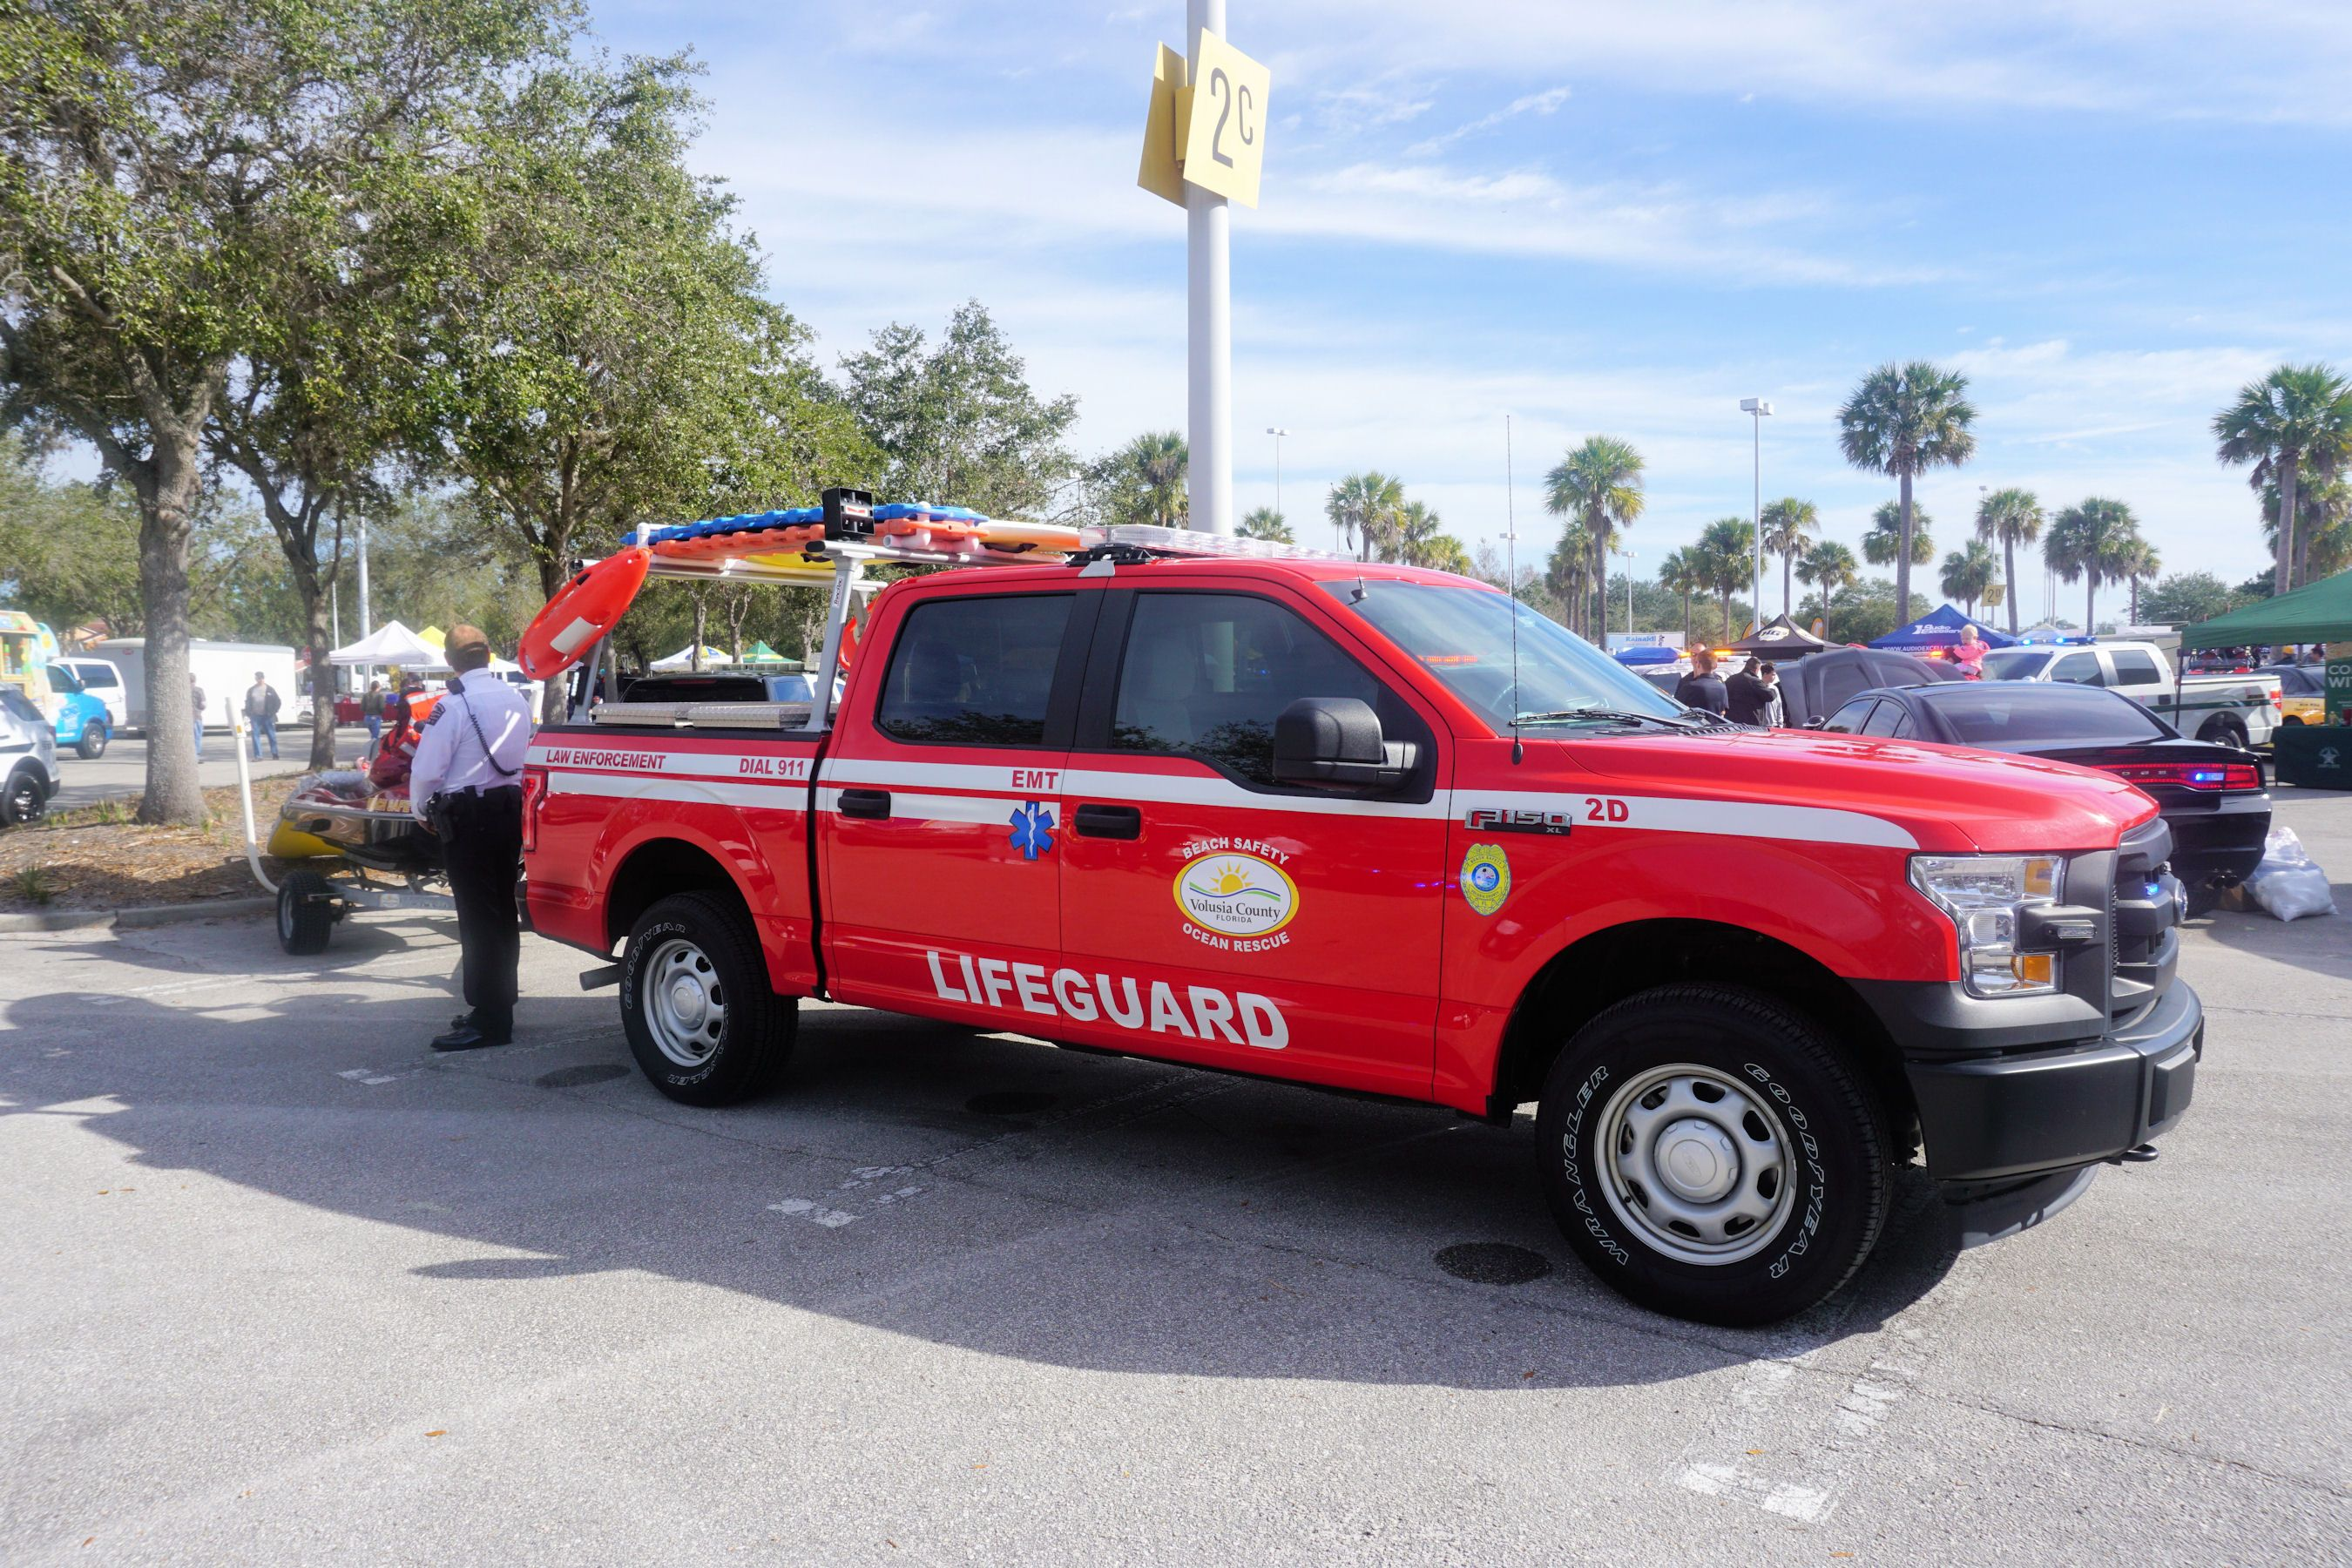 Volusia County Lifeguard Cops And Cars For Kids Car Show Oviedo - Kids car show